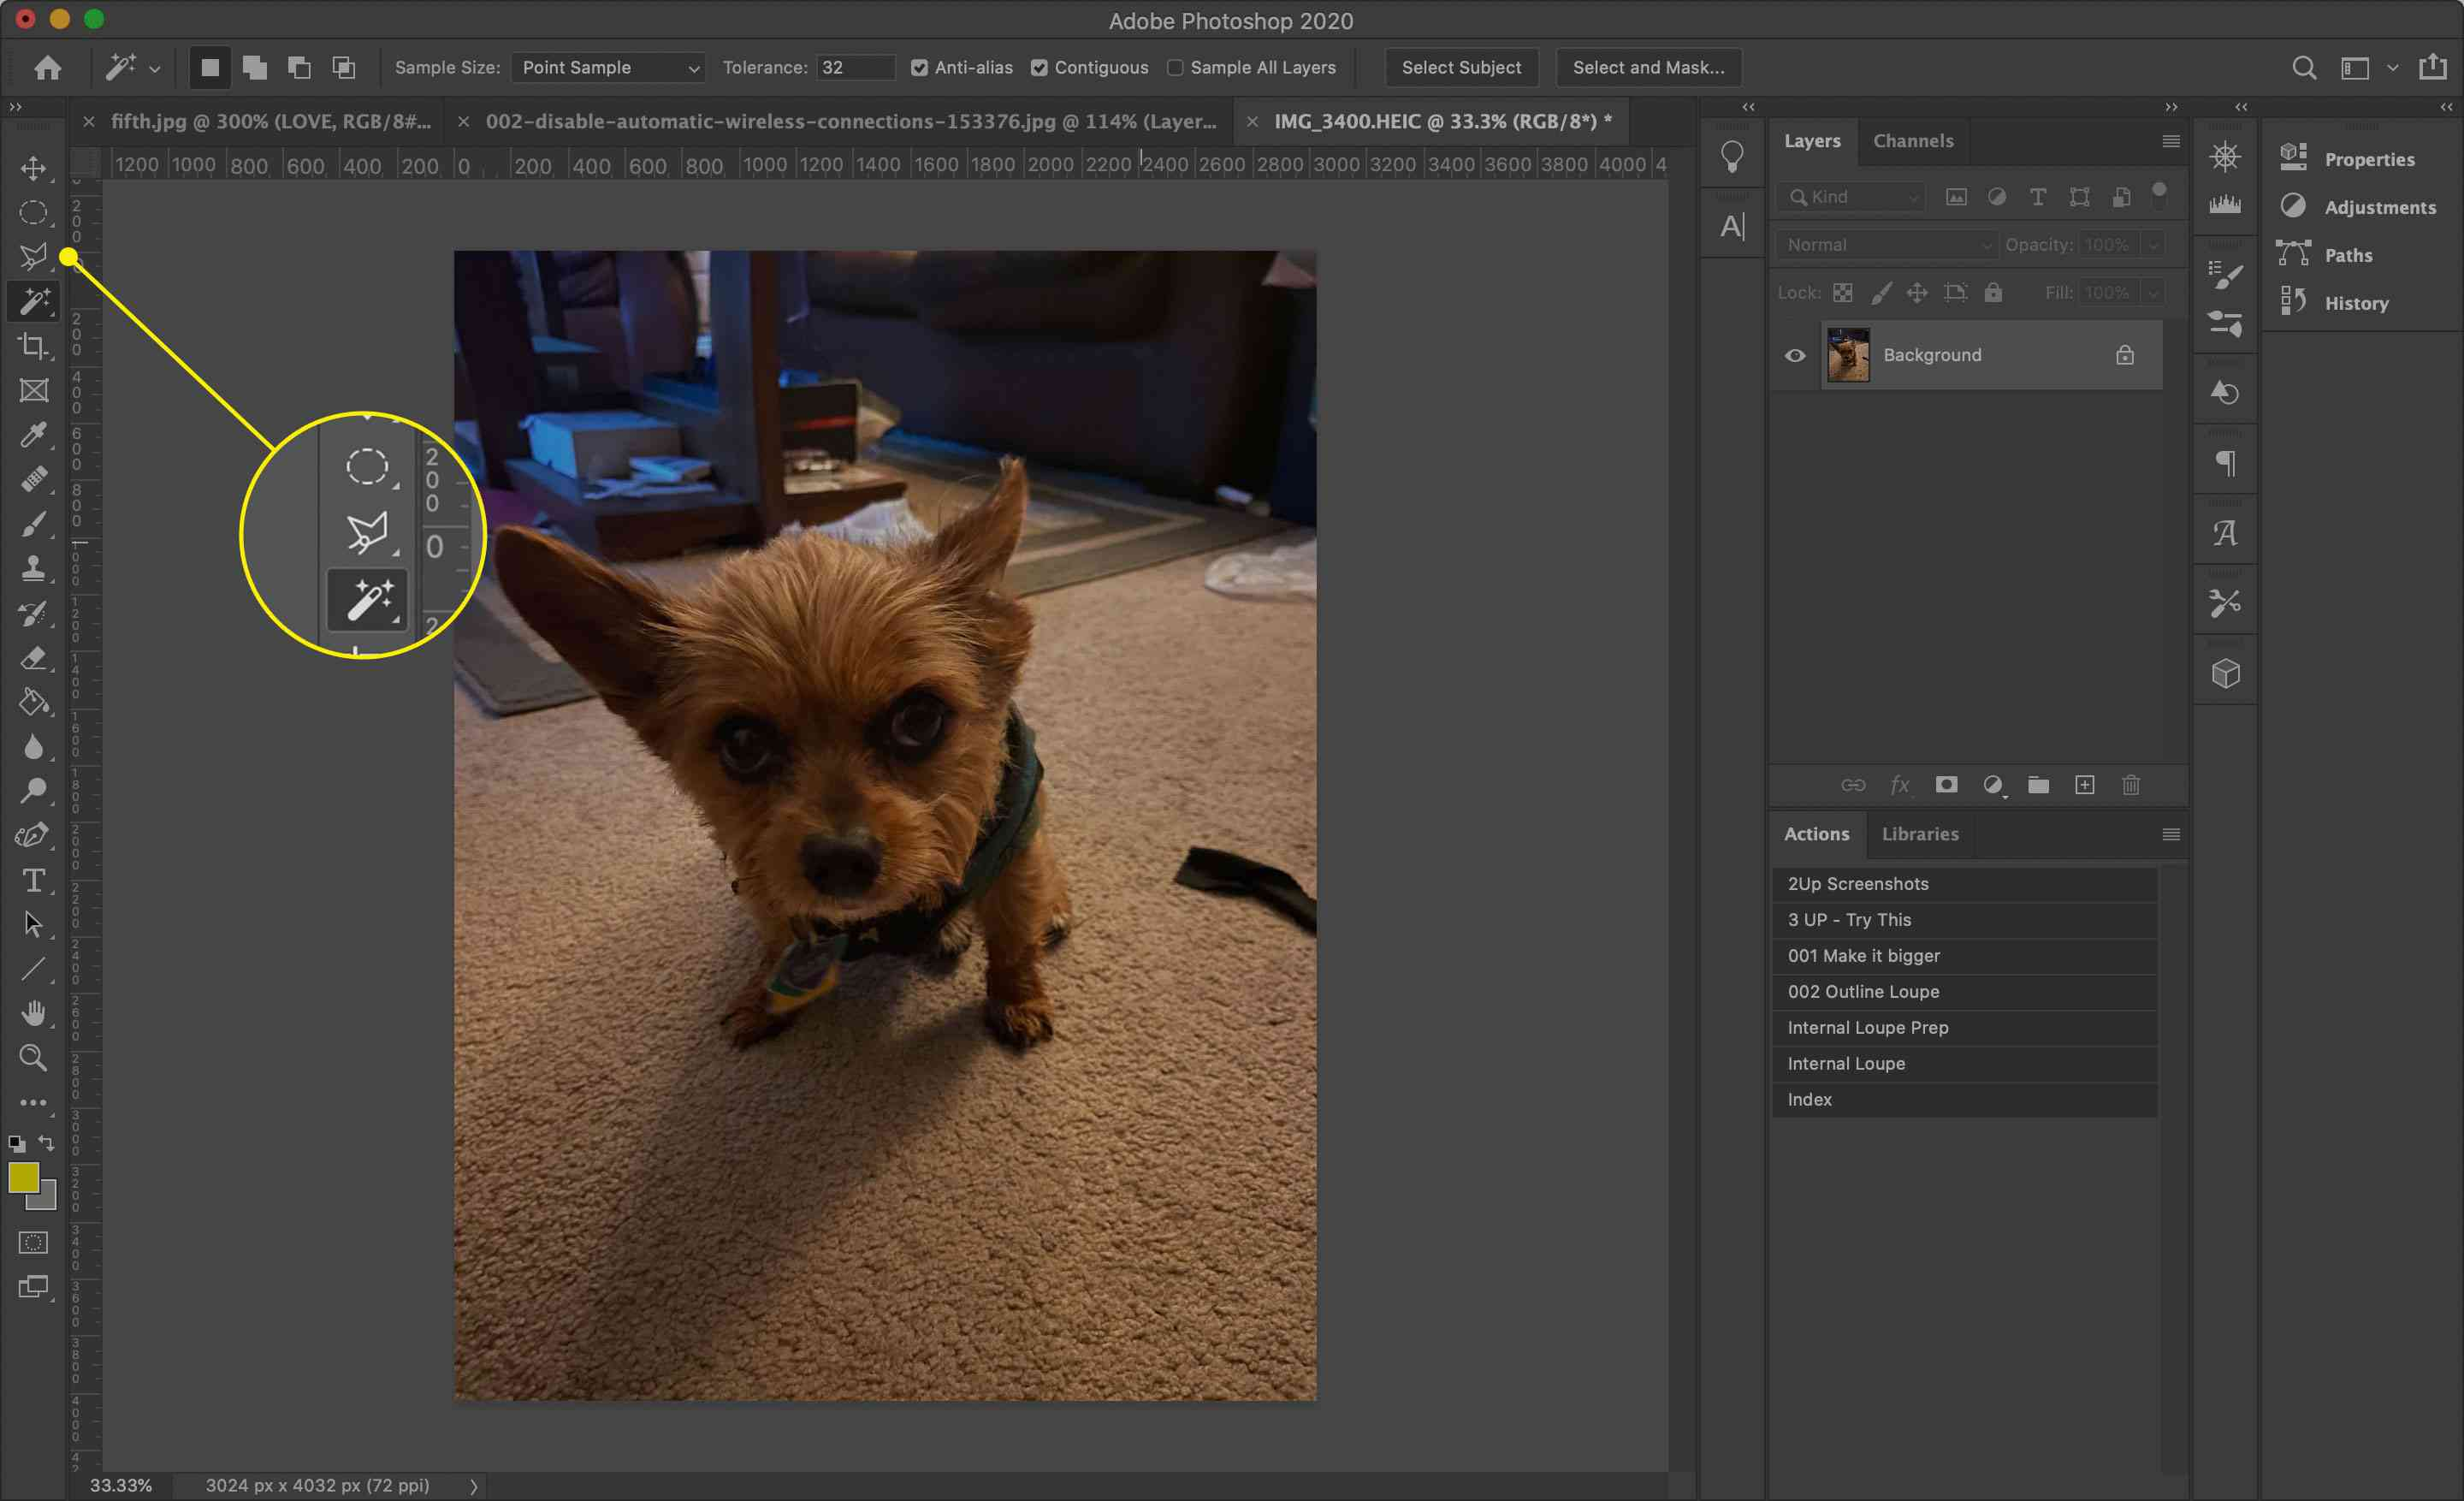 The Lasso tool in Photoshop